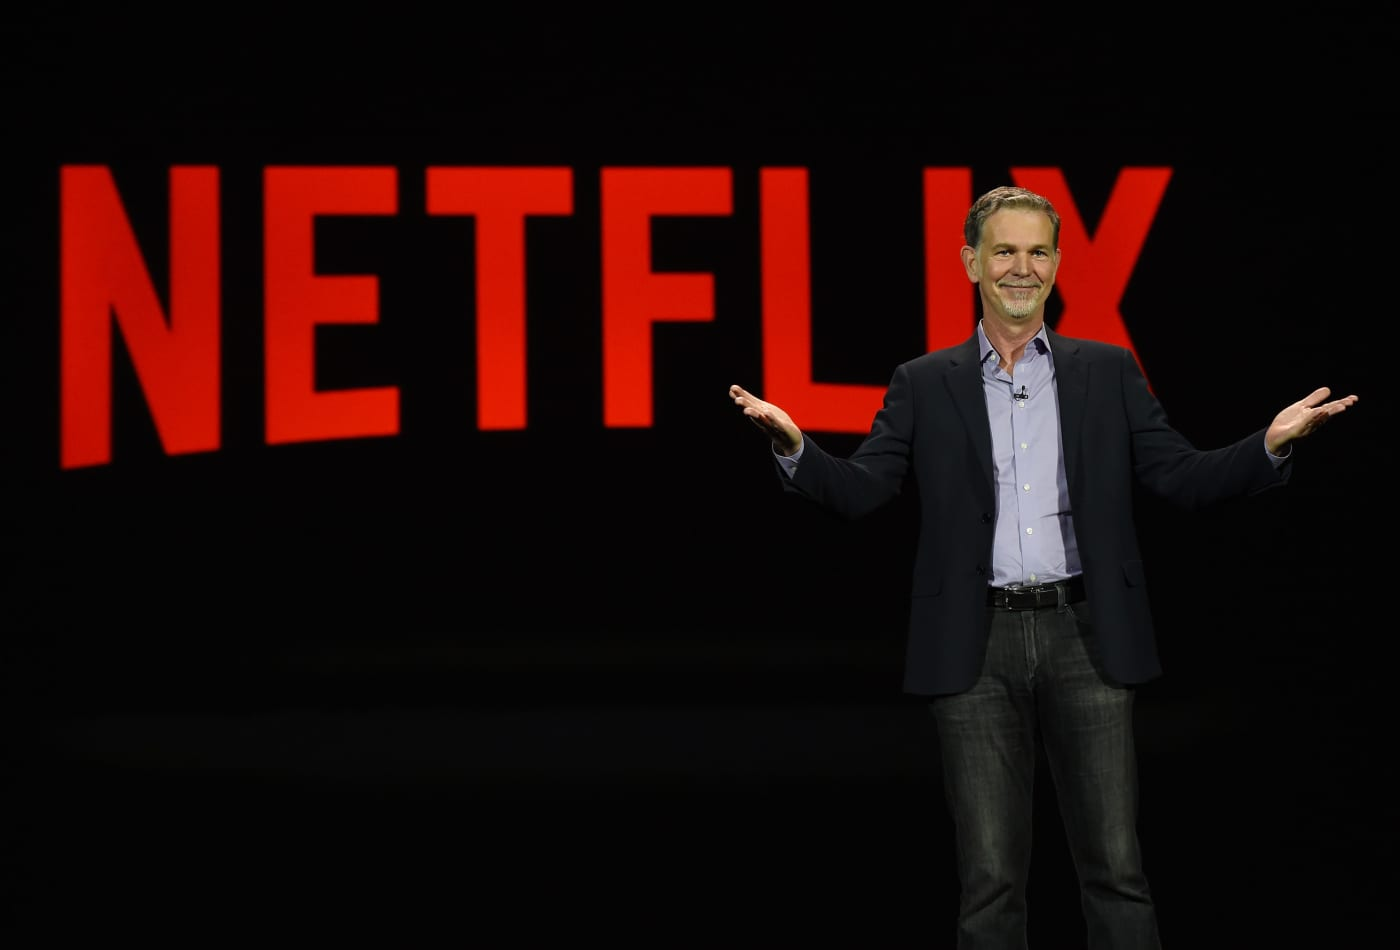 Netflix commits $100 million to support Black communities—the employee who proposed the idea was inspired by this book